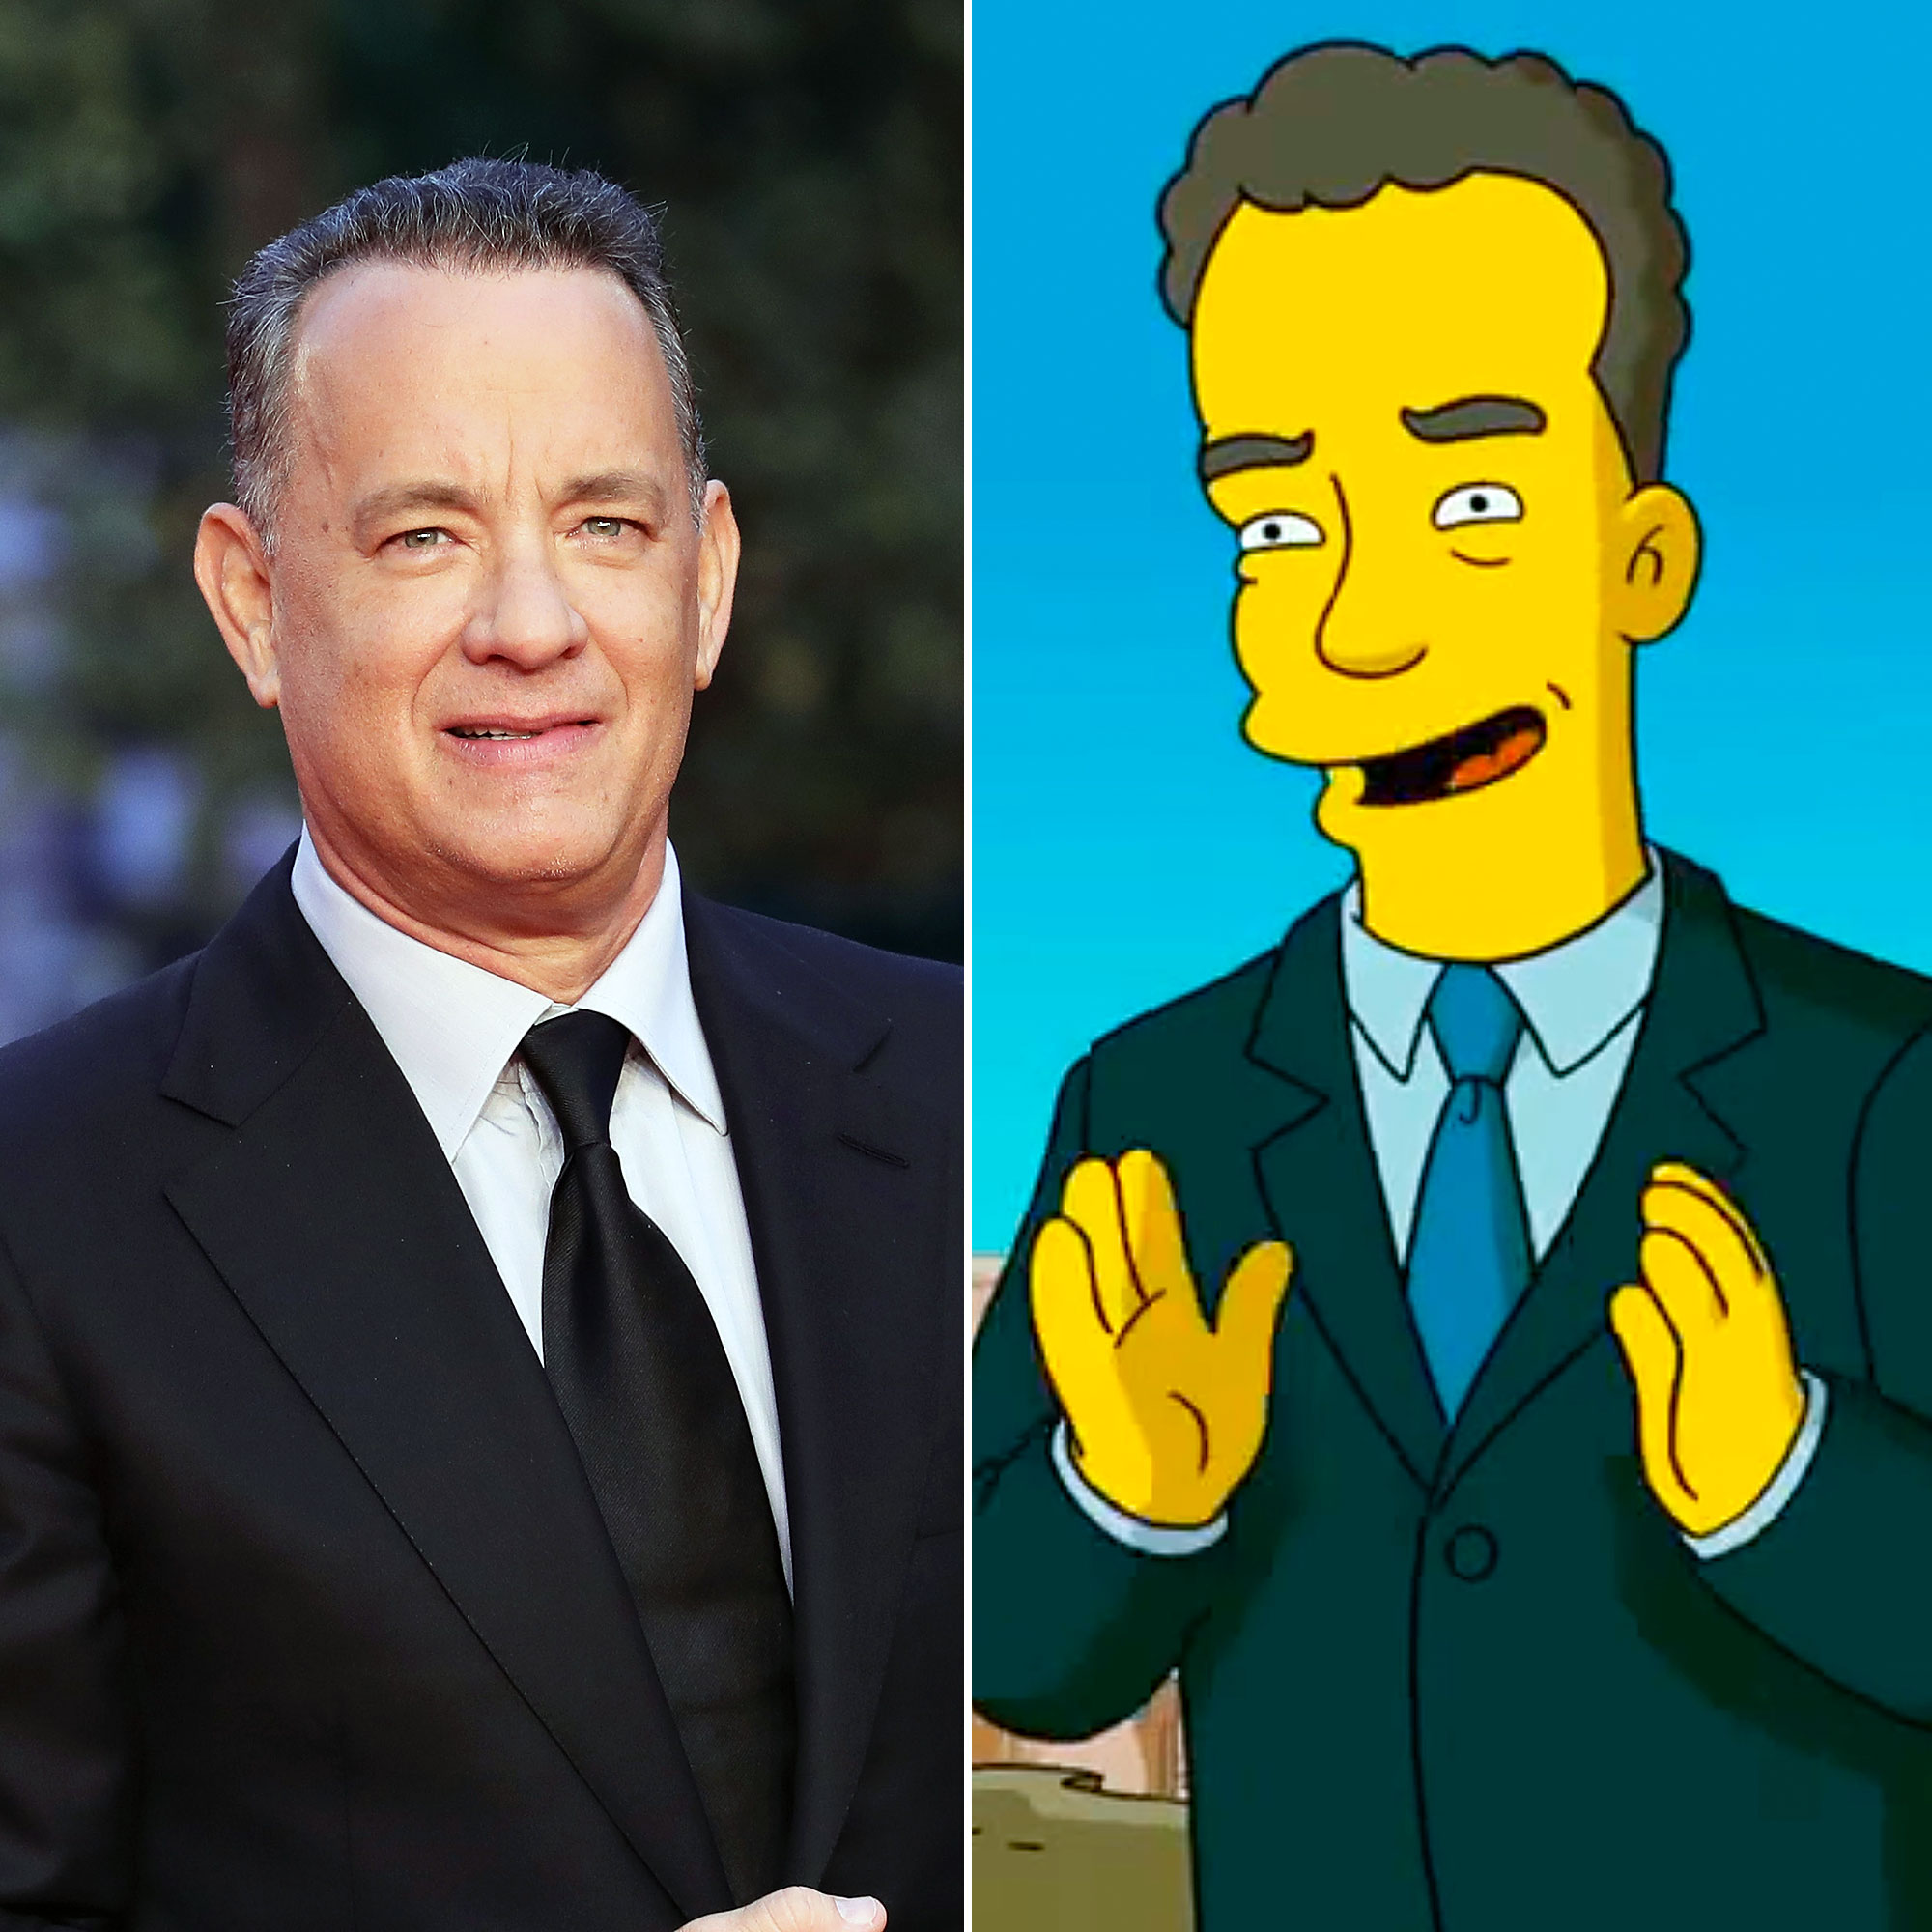 'Simpsons' creator answers show's biggest mysteries